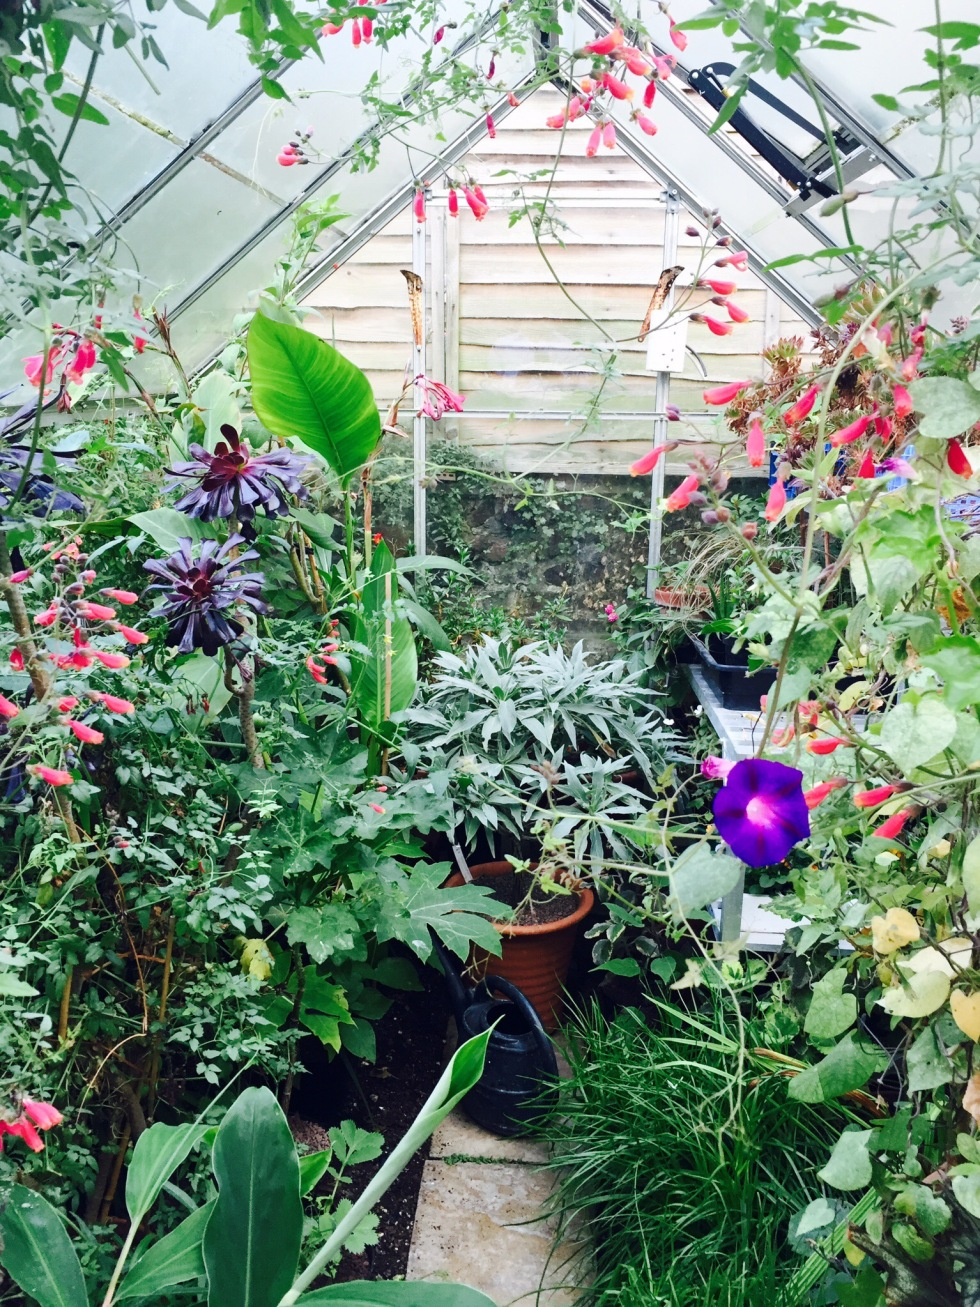 The greenhouse, Polegate Cottage, September 2016